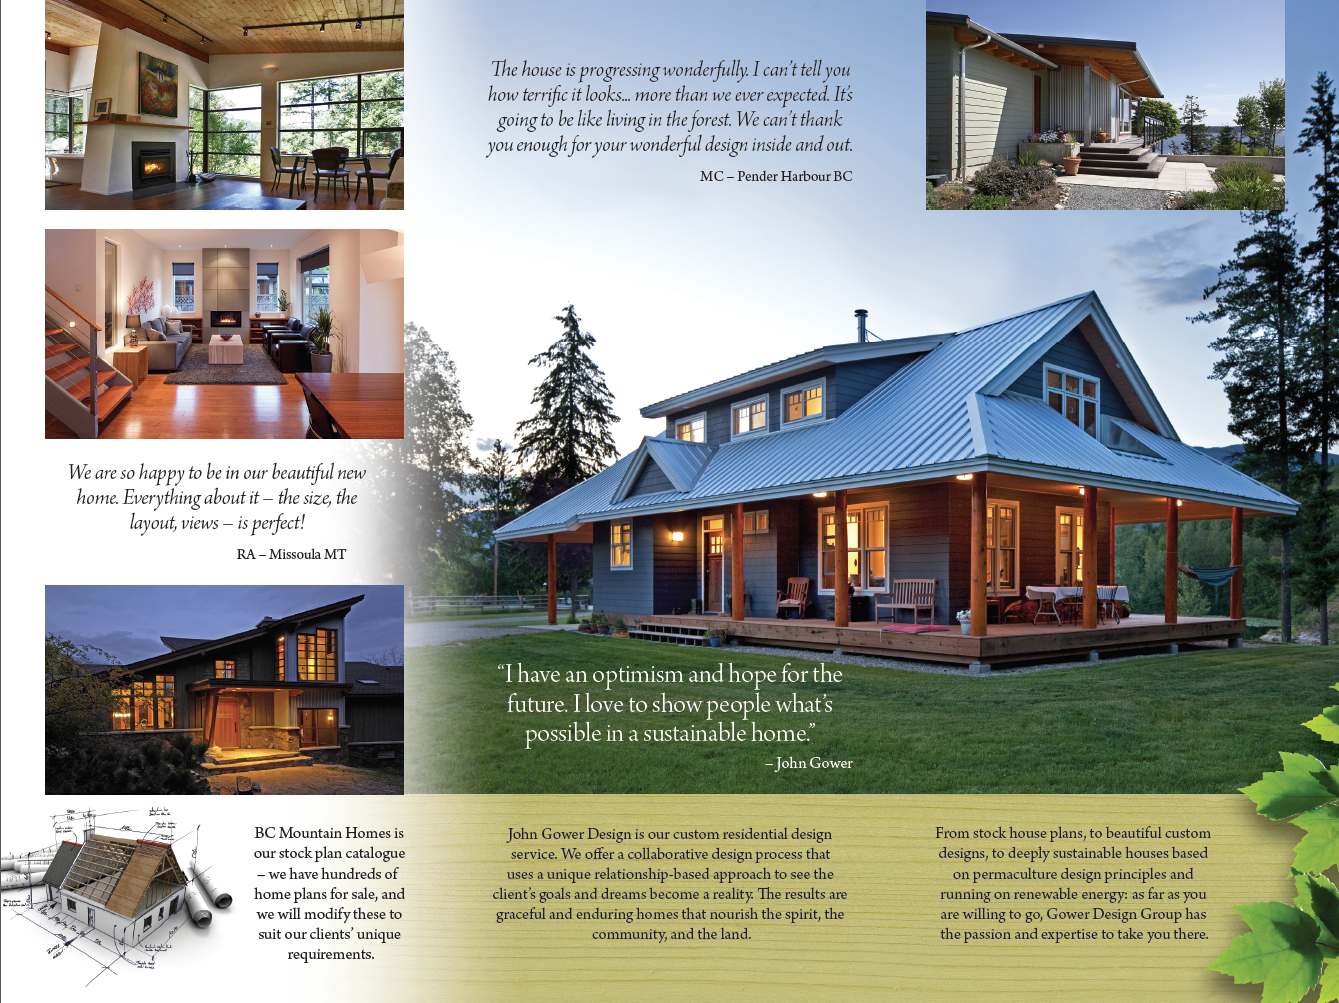 Gower Design Group brochure inside spread